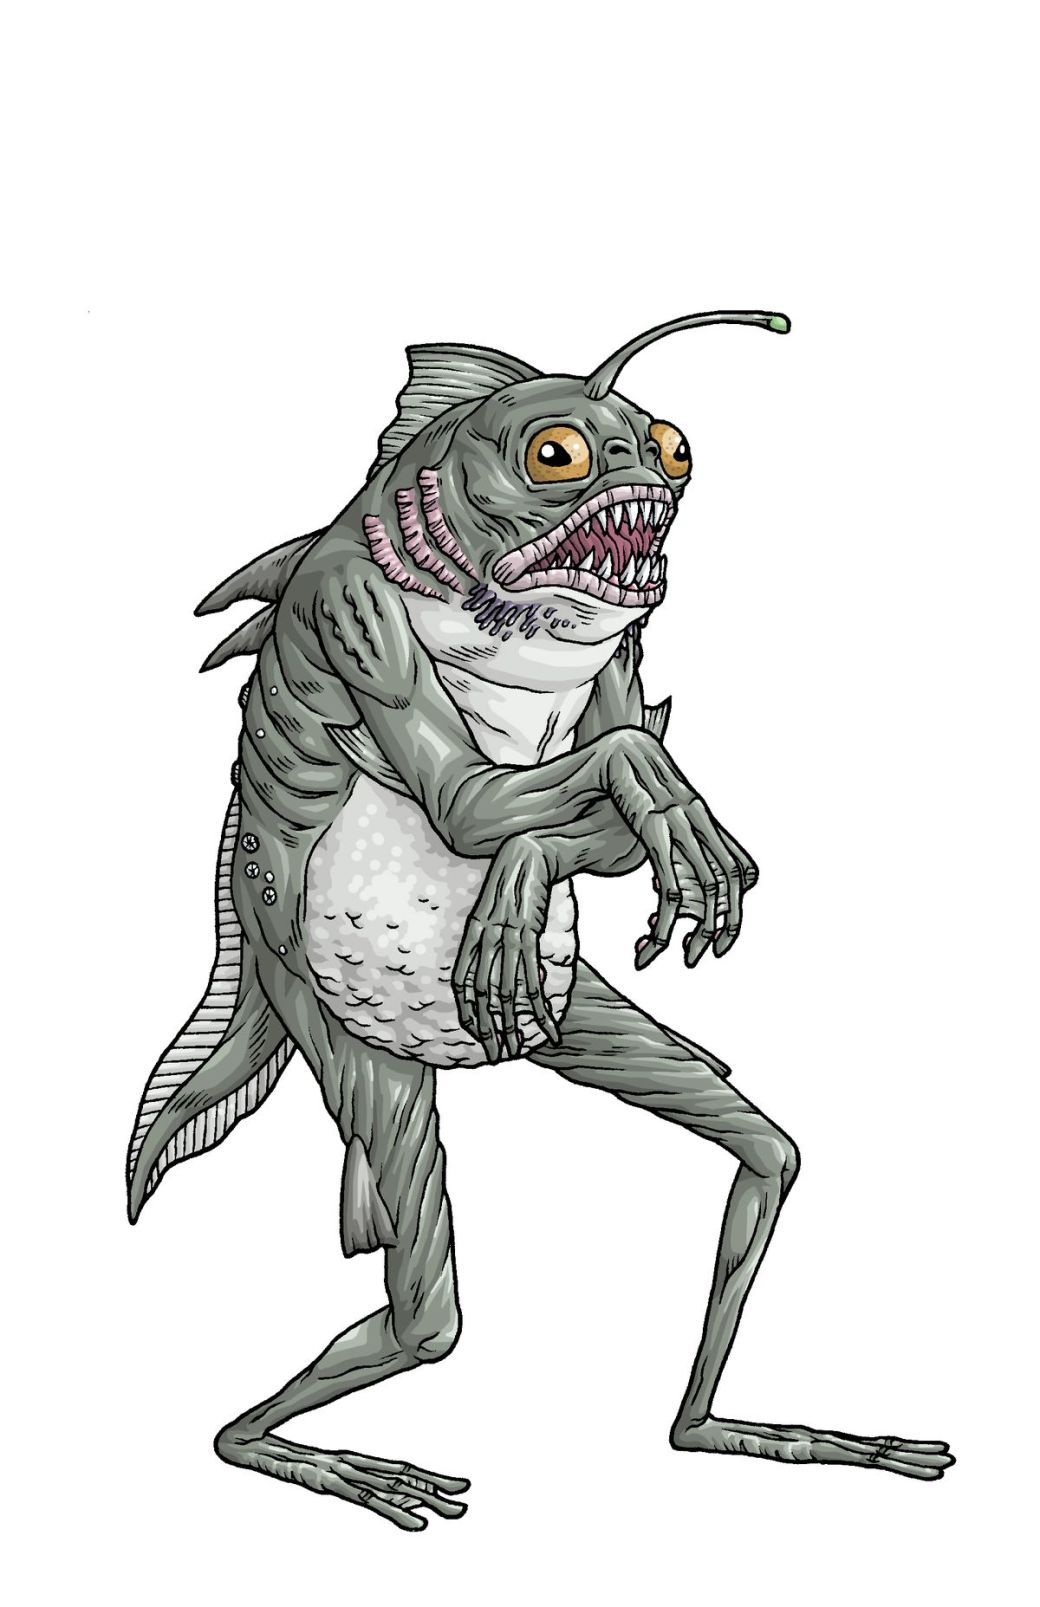 HP Lovecraft's The Deep One from The Shadow Over Innsmouth